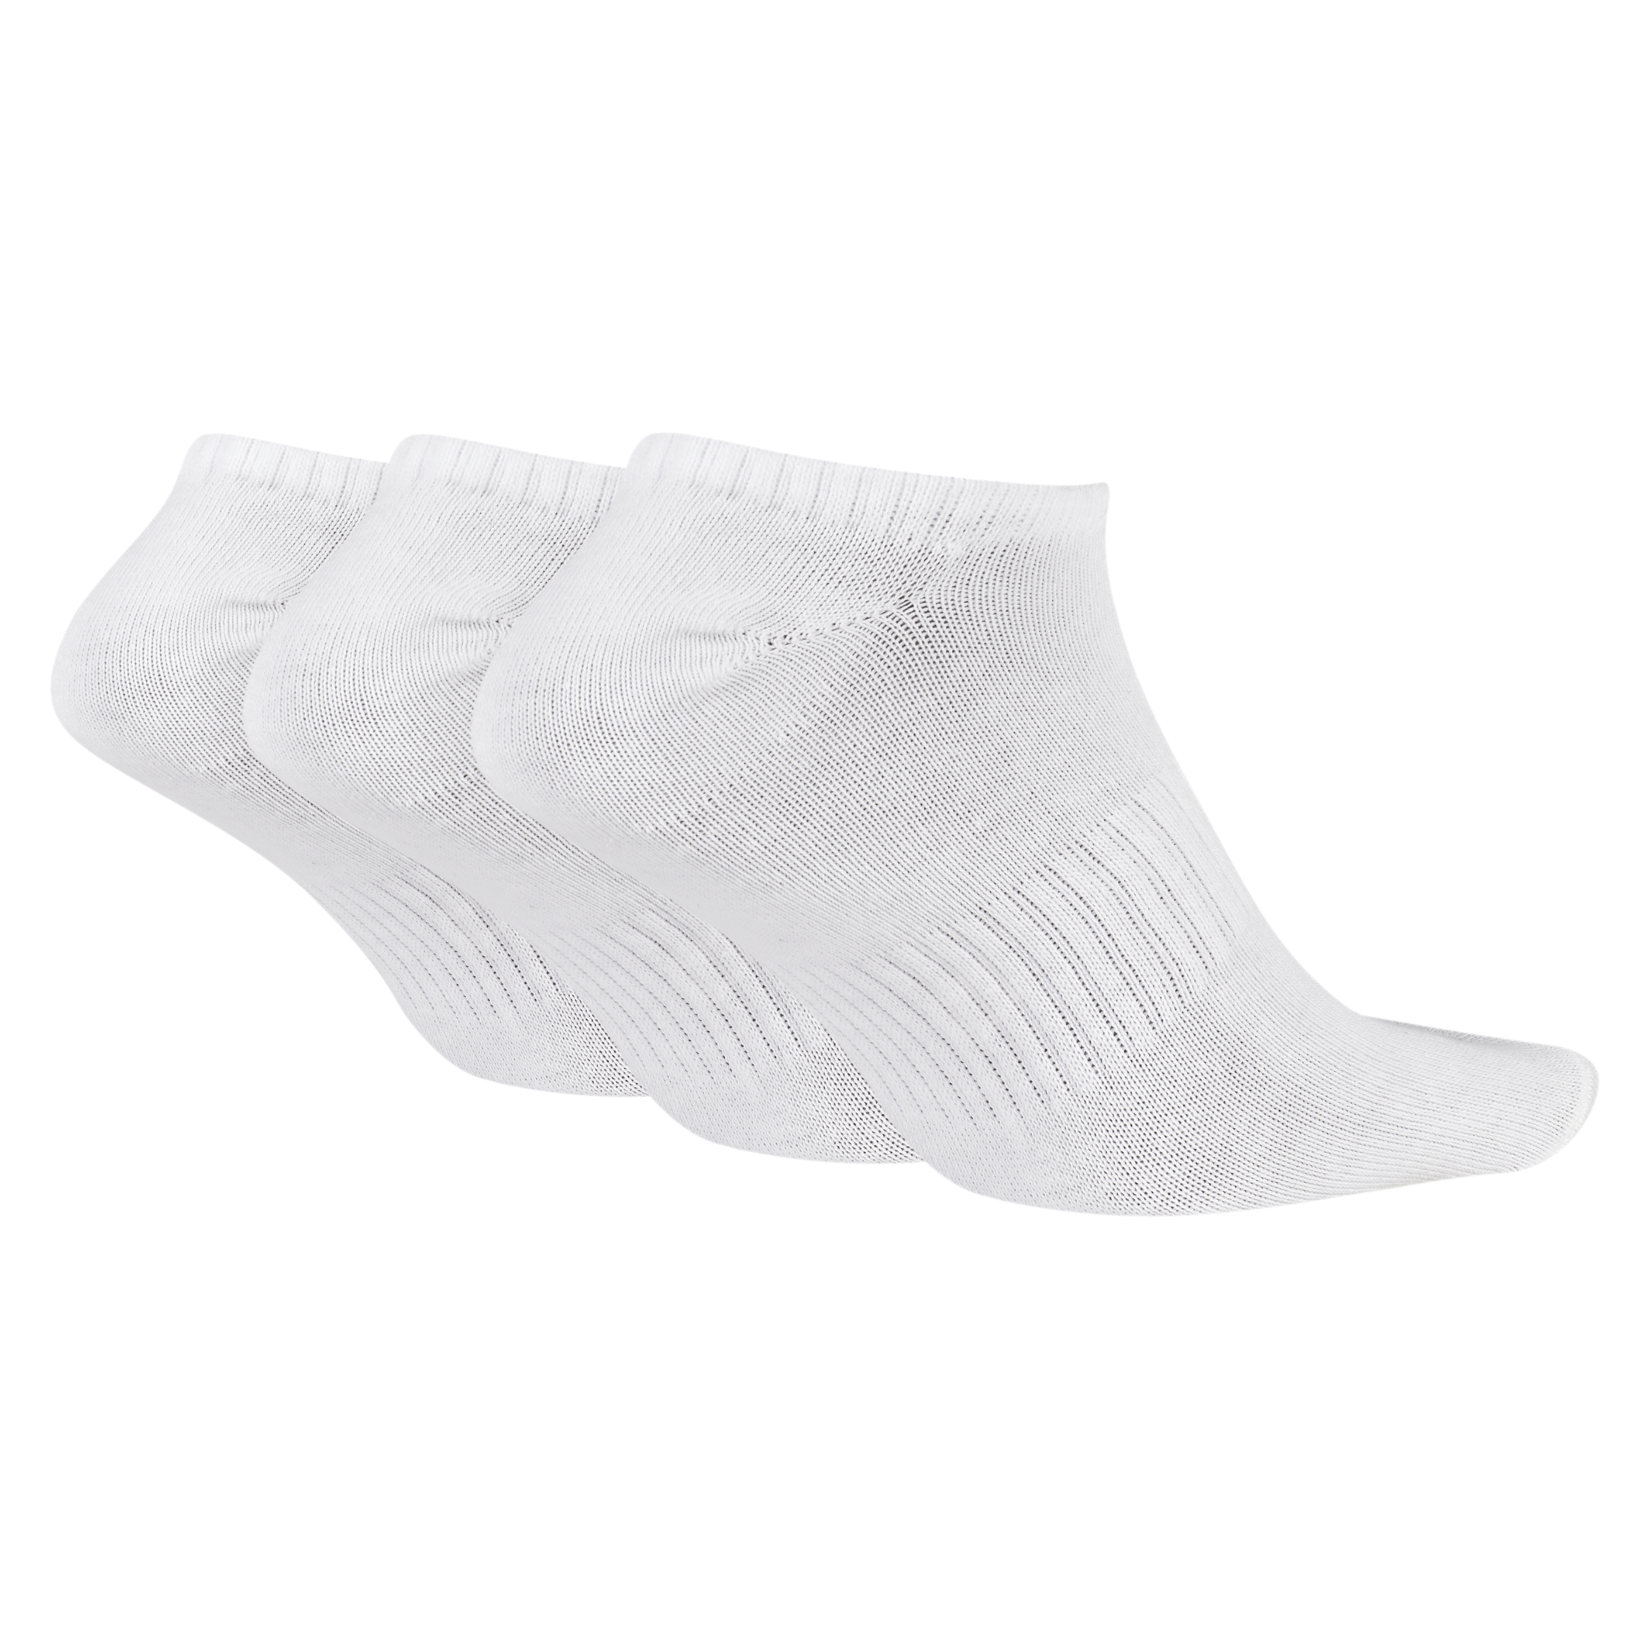 Nike Everyday Lightweight No-Show Training Socks (3 Pair)